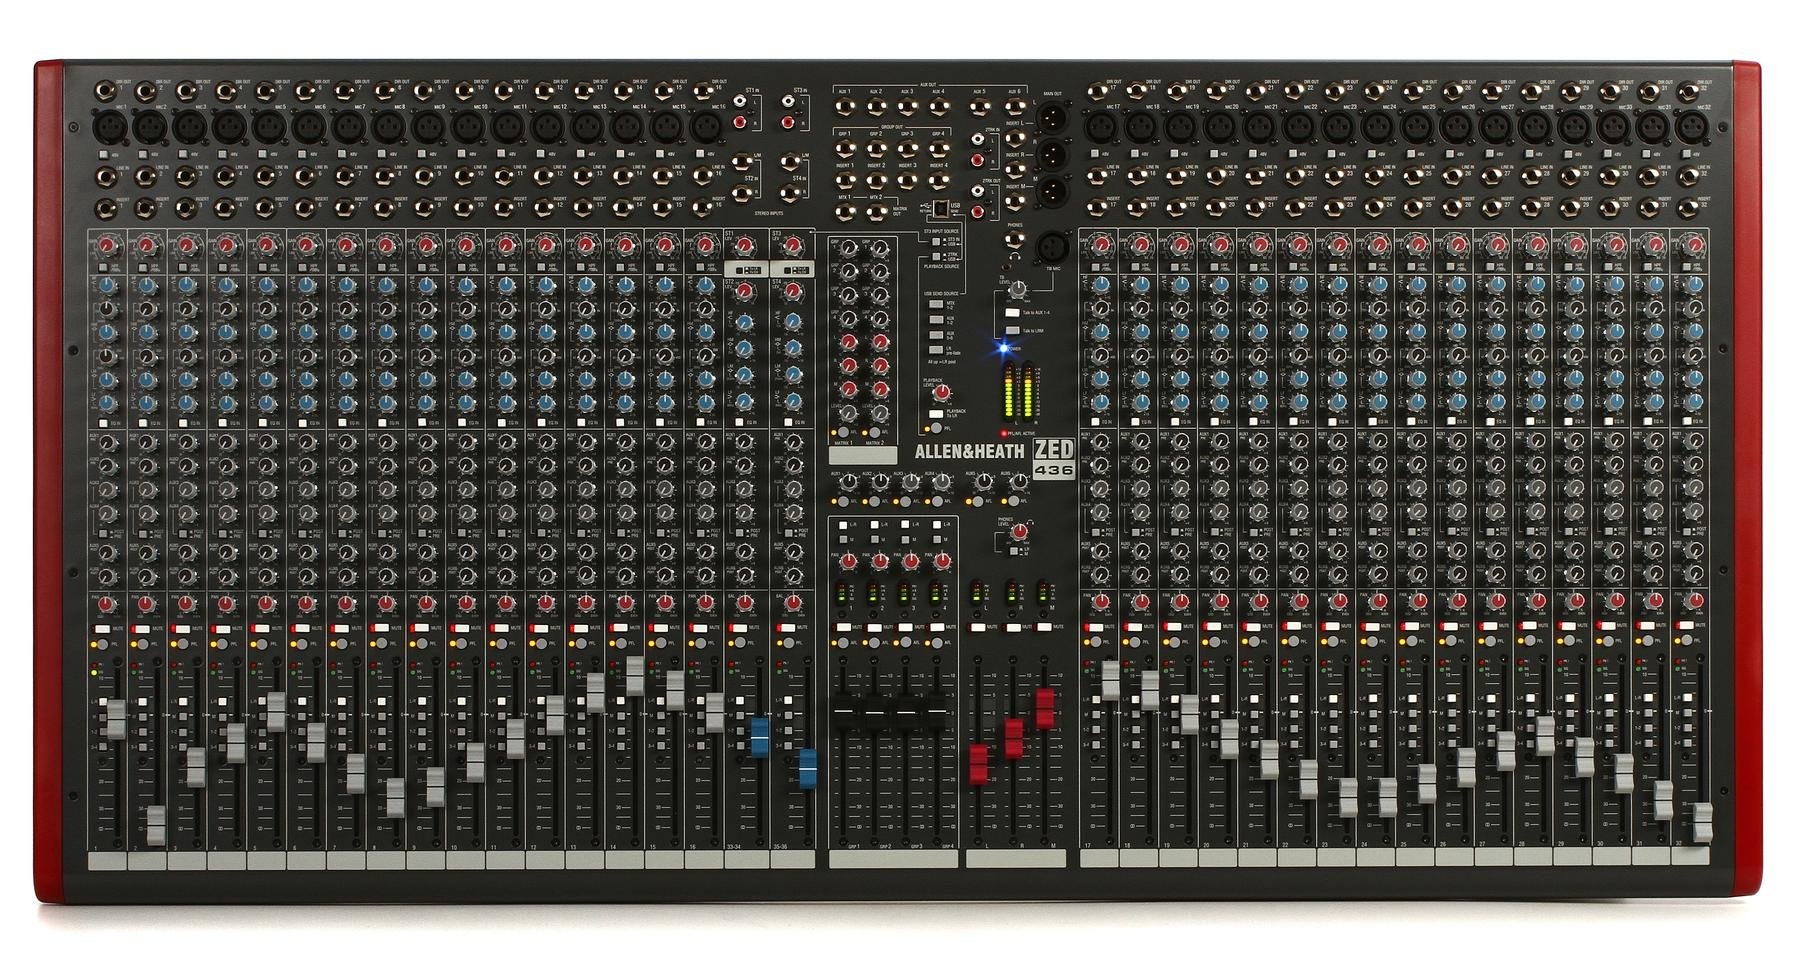 Allen Heath Zed 436 Mixer With Usb Sweetwater Option Than Store Bought Flexible Circuit Boards Give It A Try Image 1